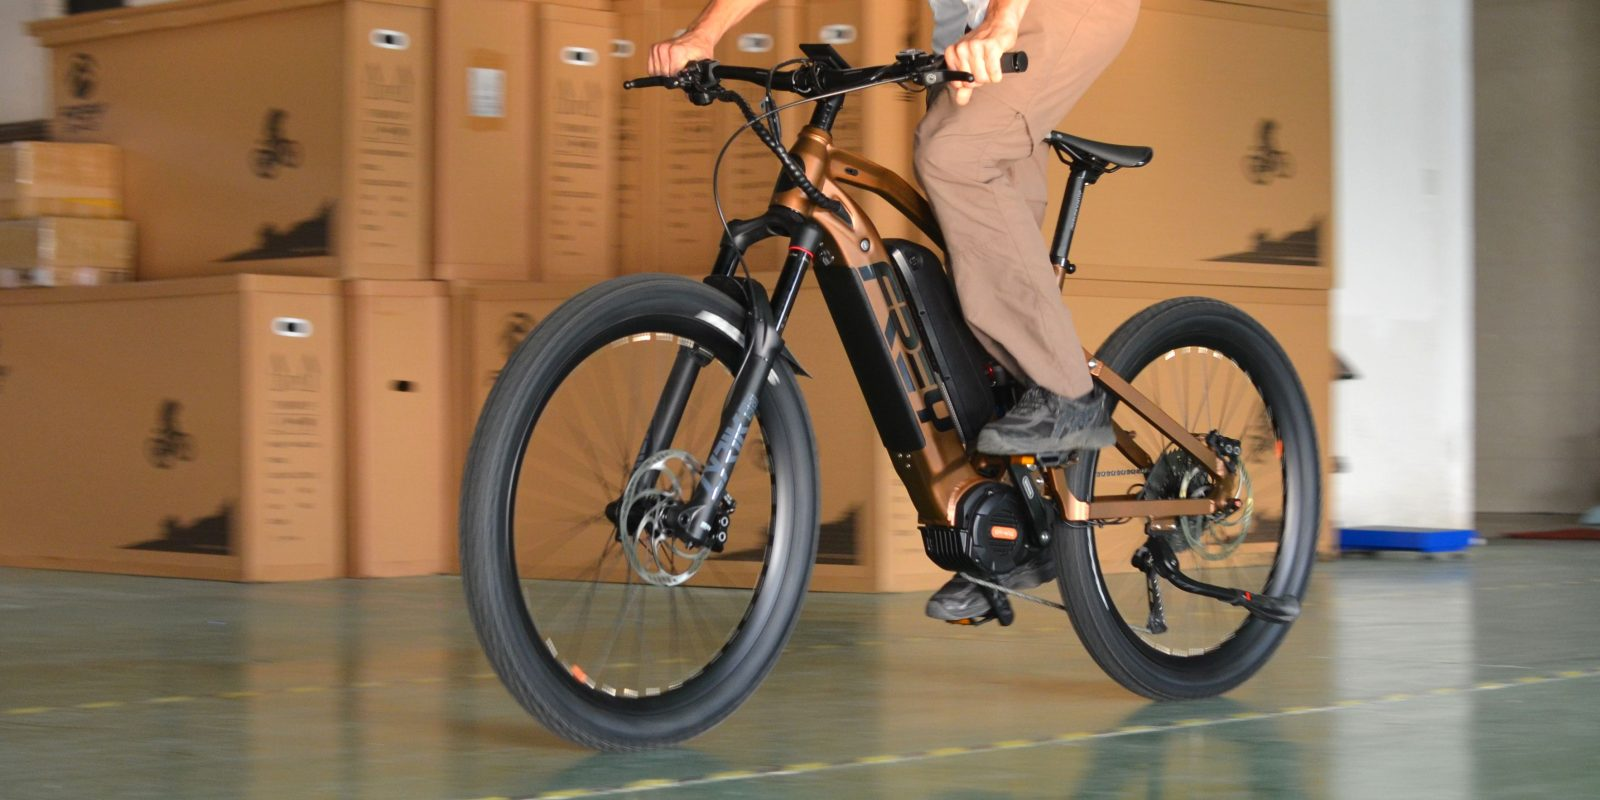 Frey Bike unveils 31 mph 1,500W full suspension commuter e-bike and dual battery EMTB